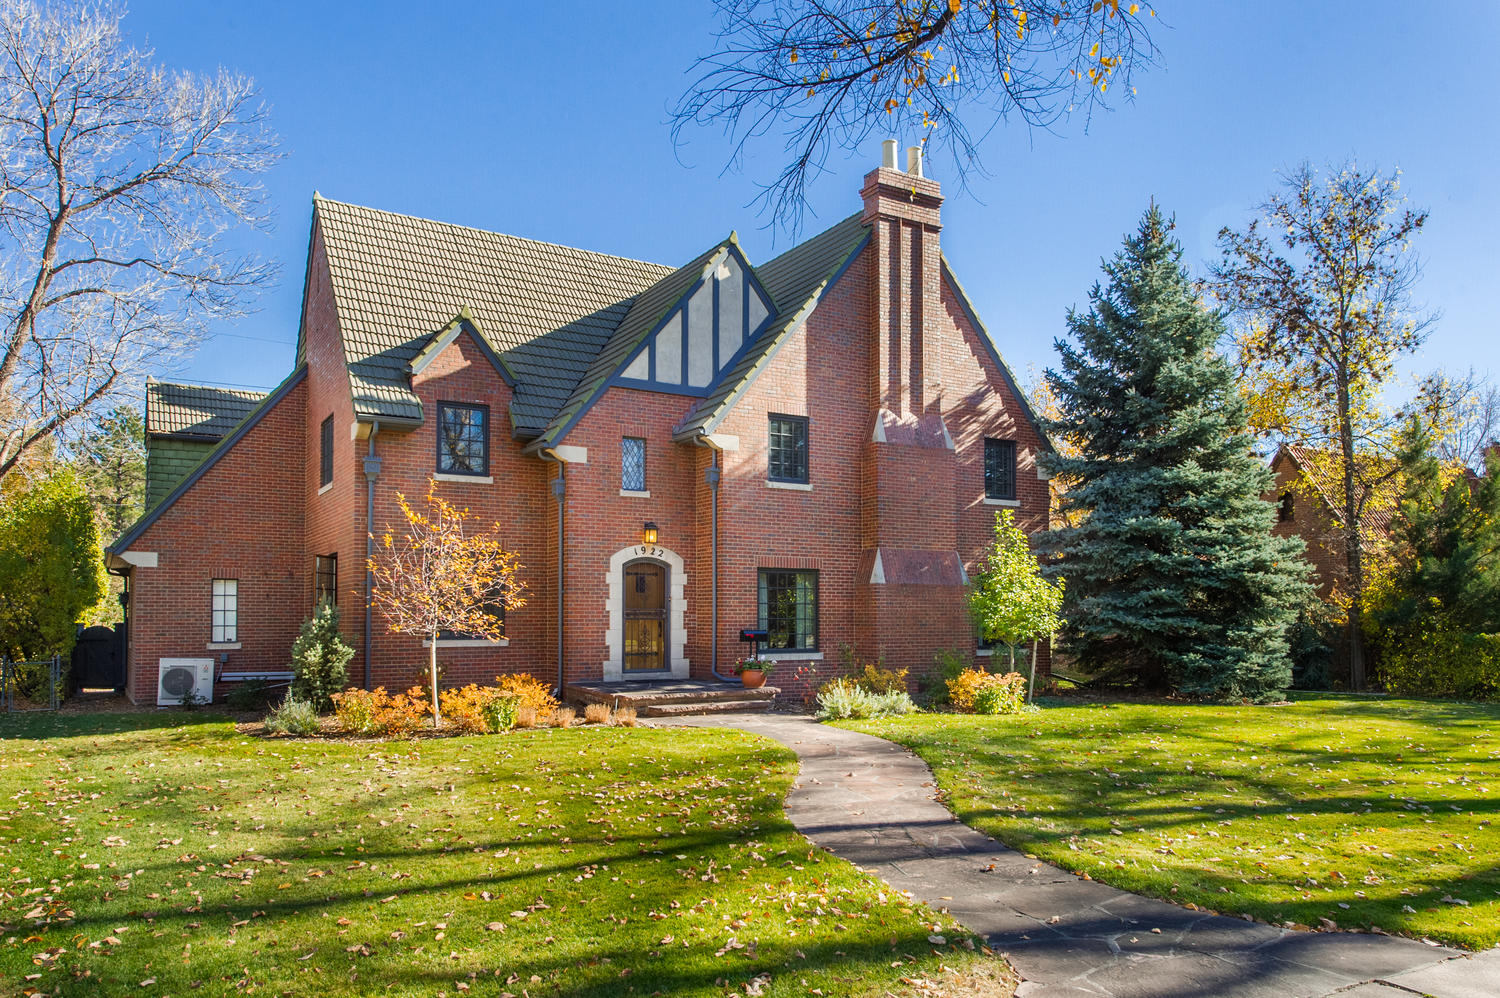 Single Family Home for Sale at Stately and spacious Tudor on prestigious Monaco Parkway 1922 Monaco Parkway Denver, Colorado, 80220 United States